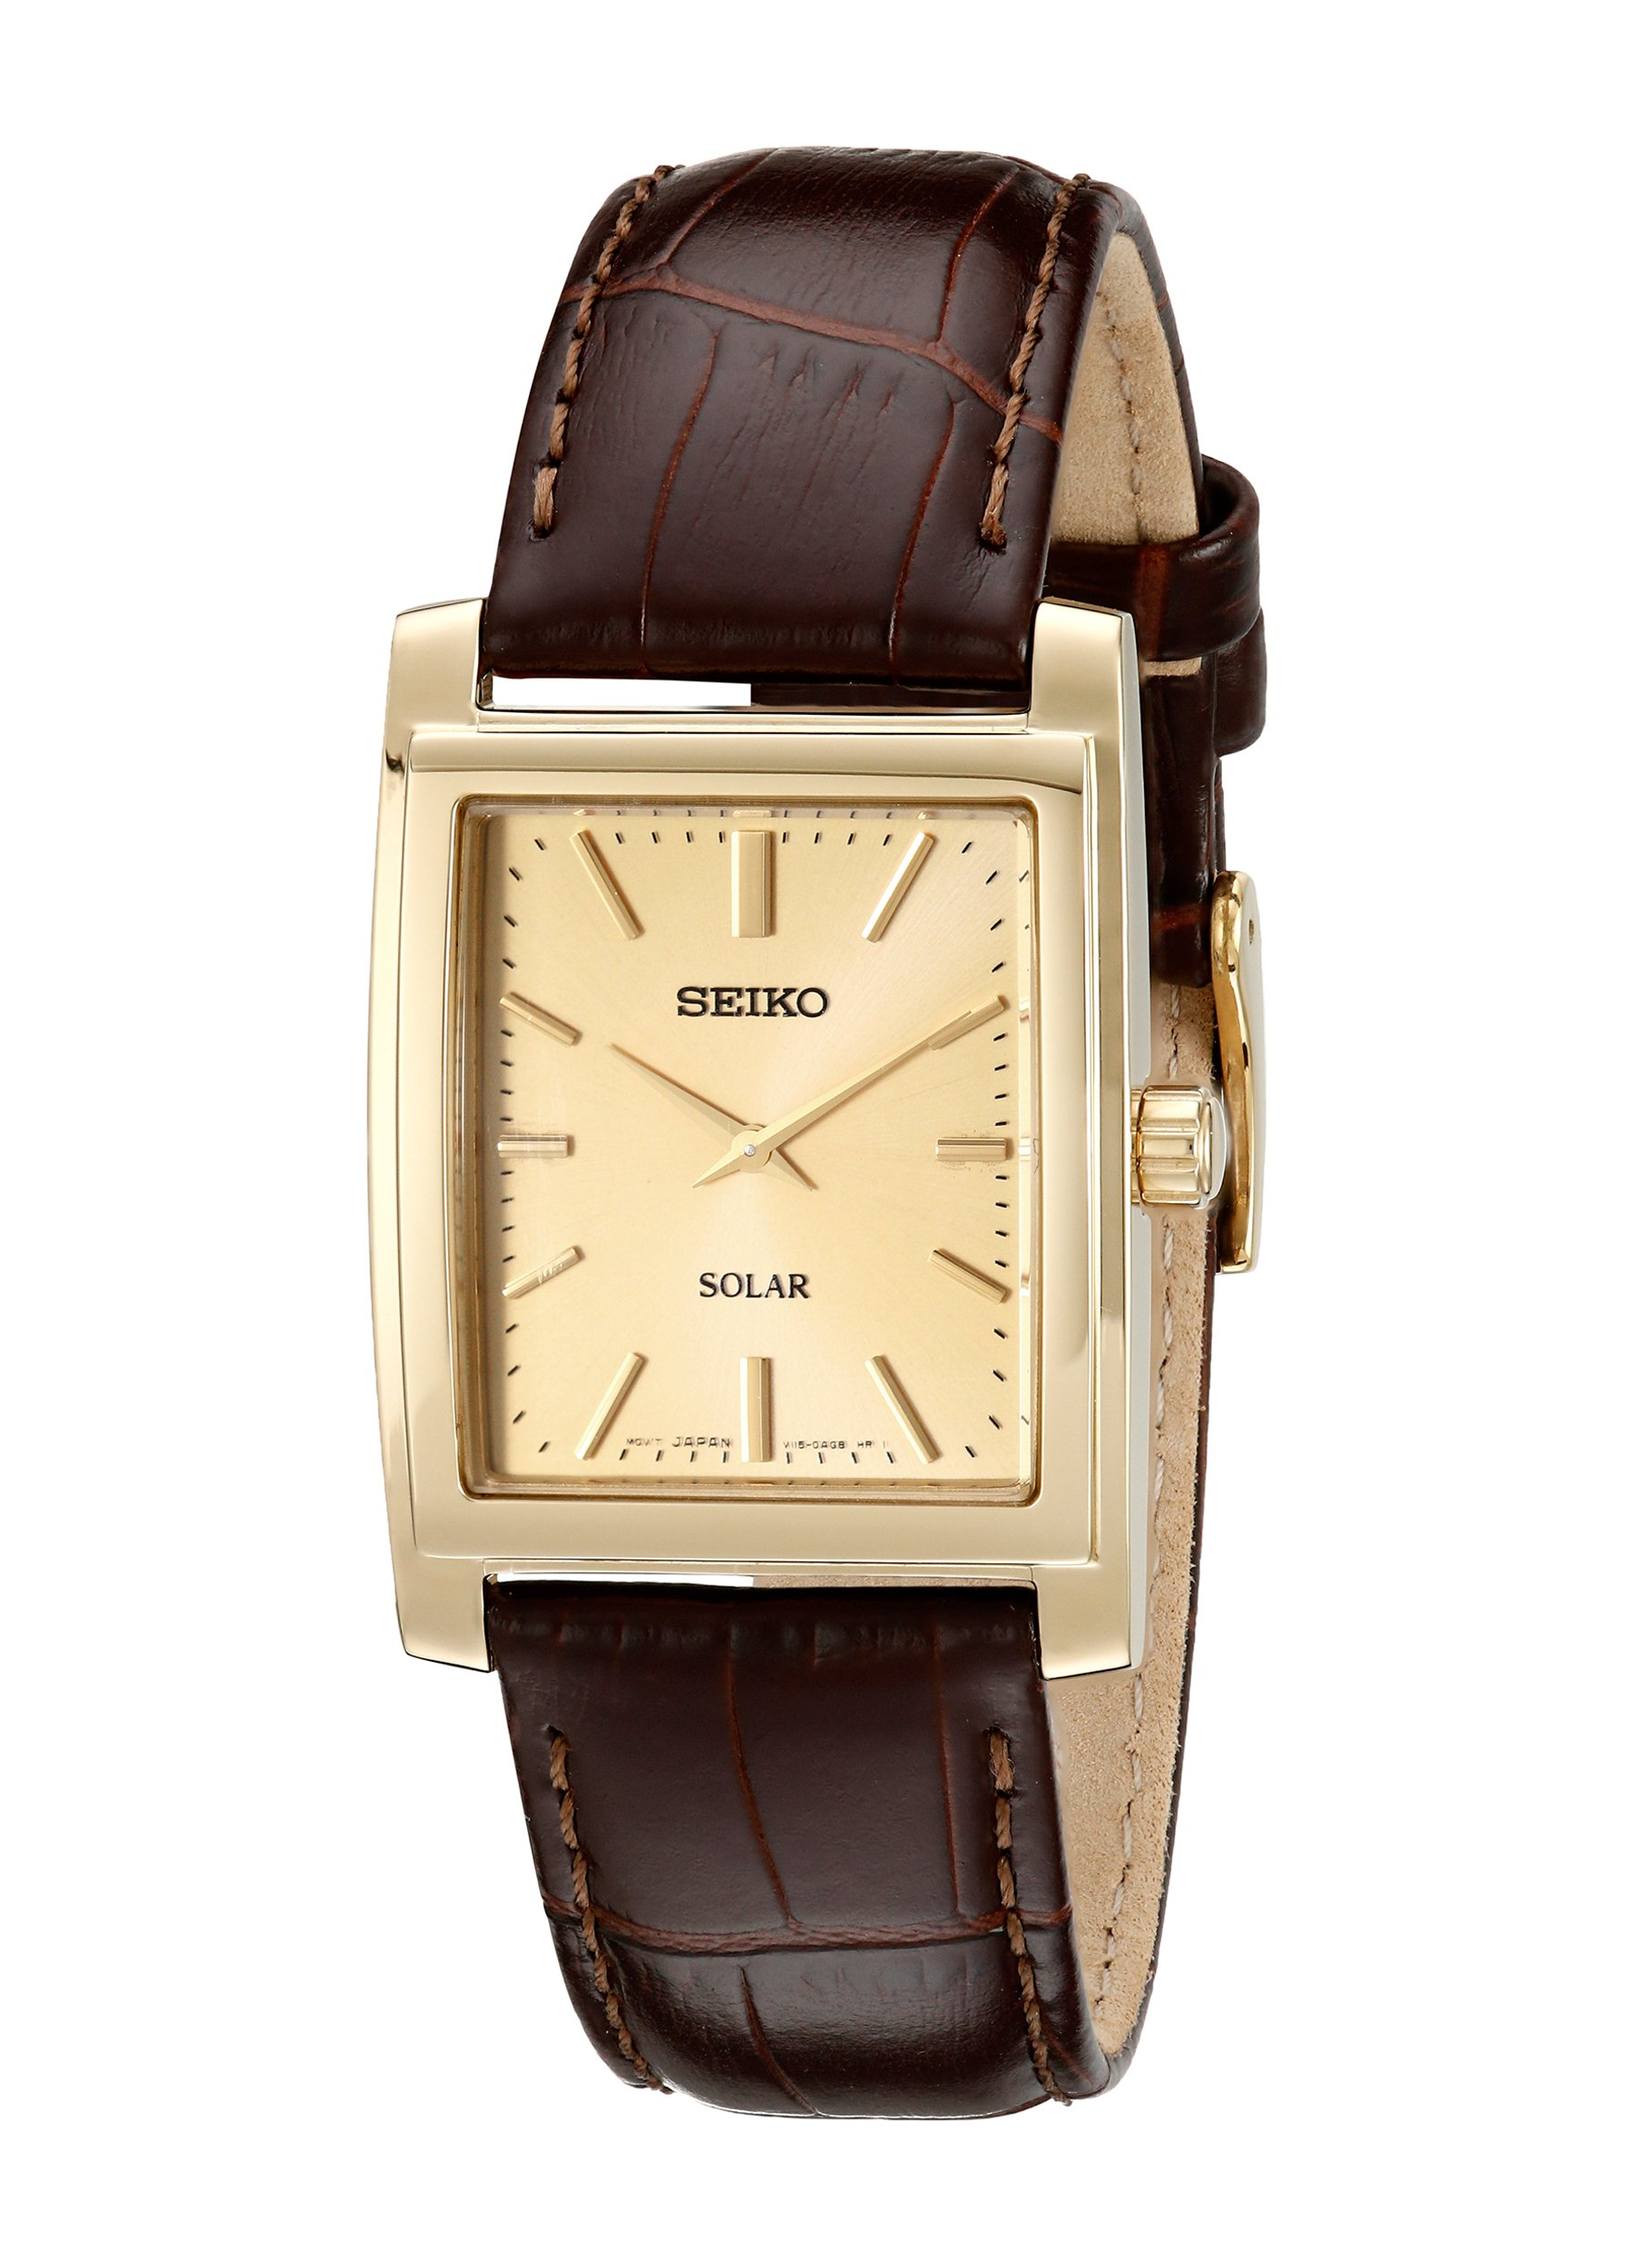 Seiko Men's SUP896 Gold-Tone and Brown Leather Solar-Power Dress Watch by SEIKO